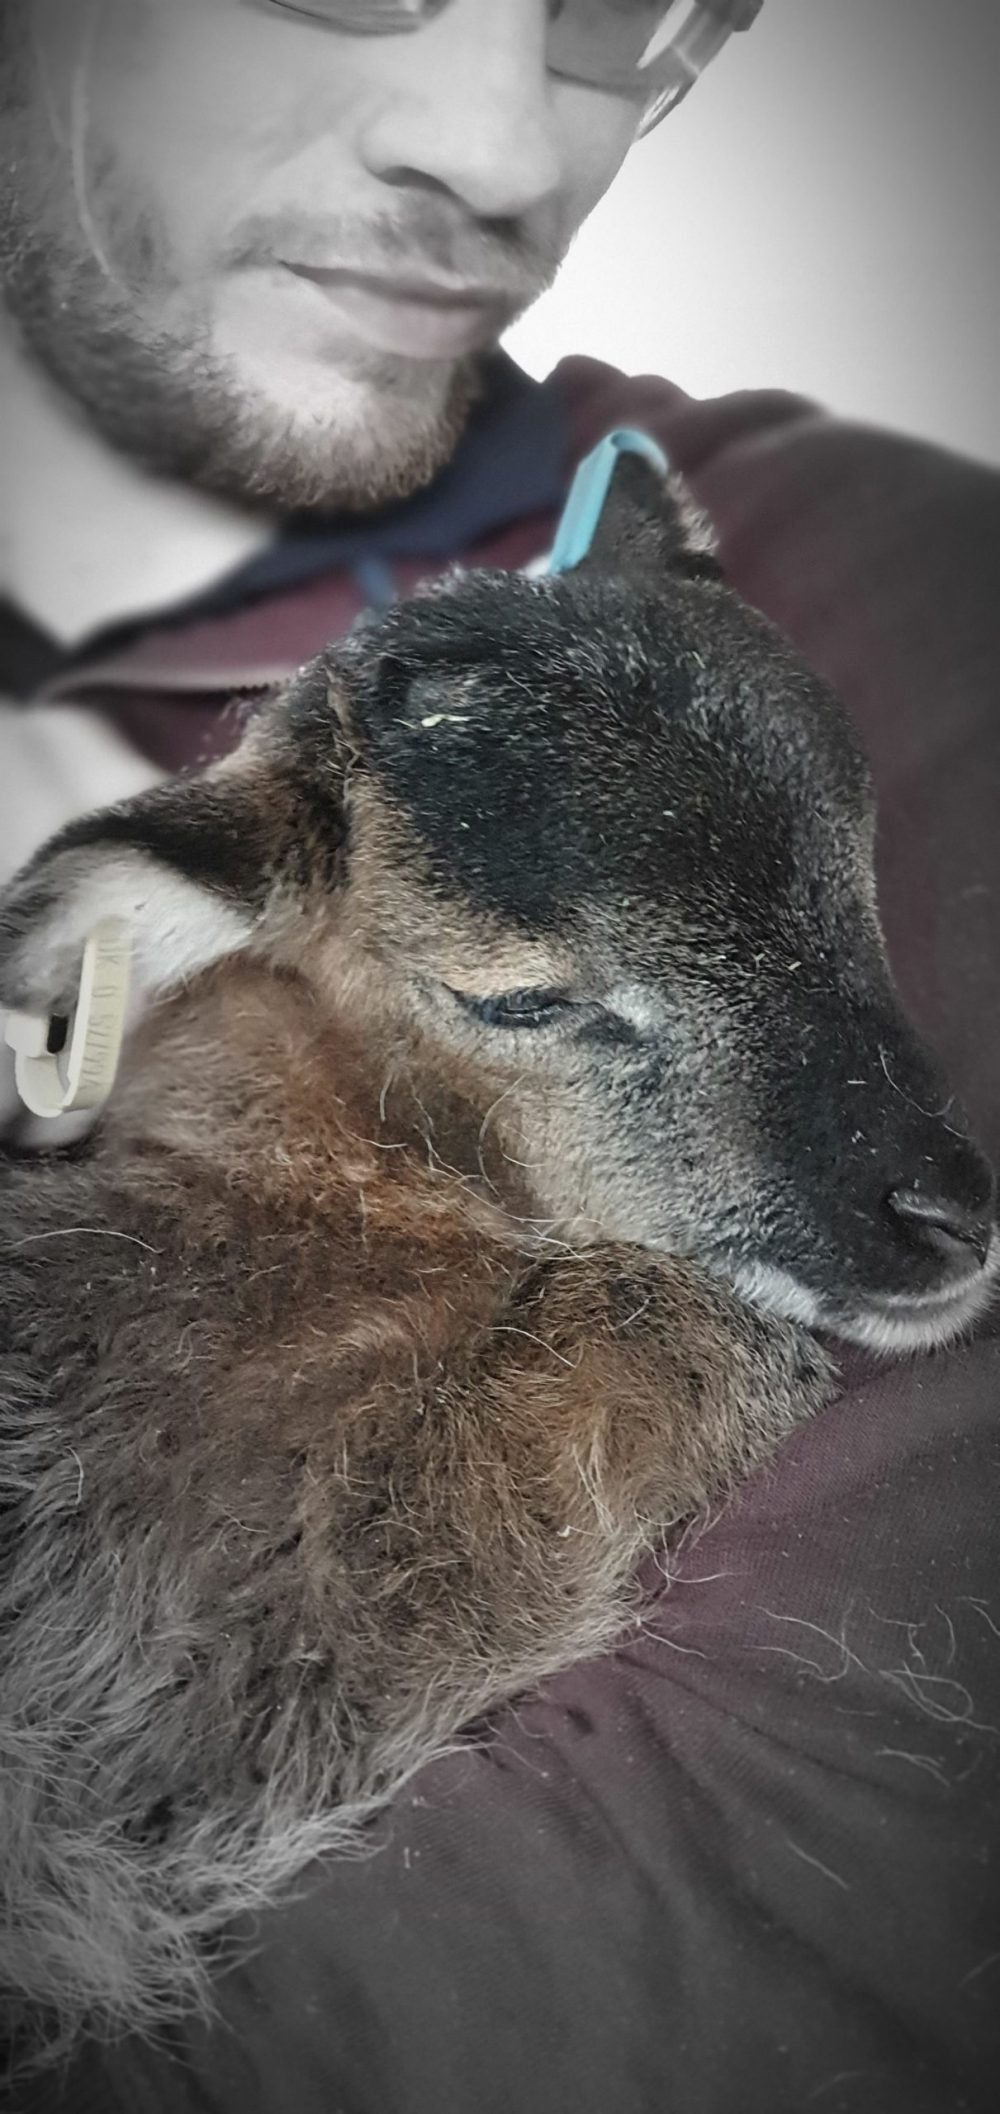 Soay ewe lamb enjoying a cuddle before going to sleep